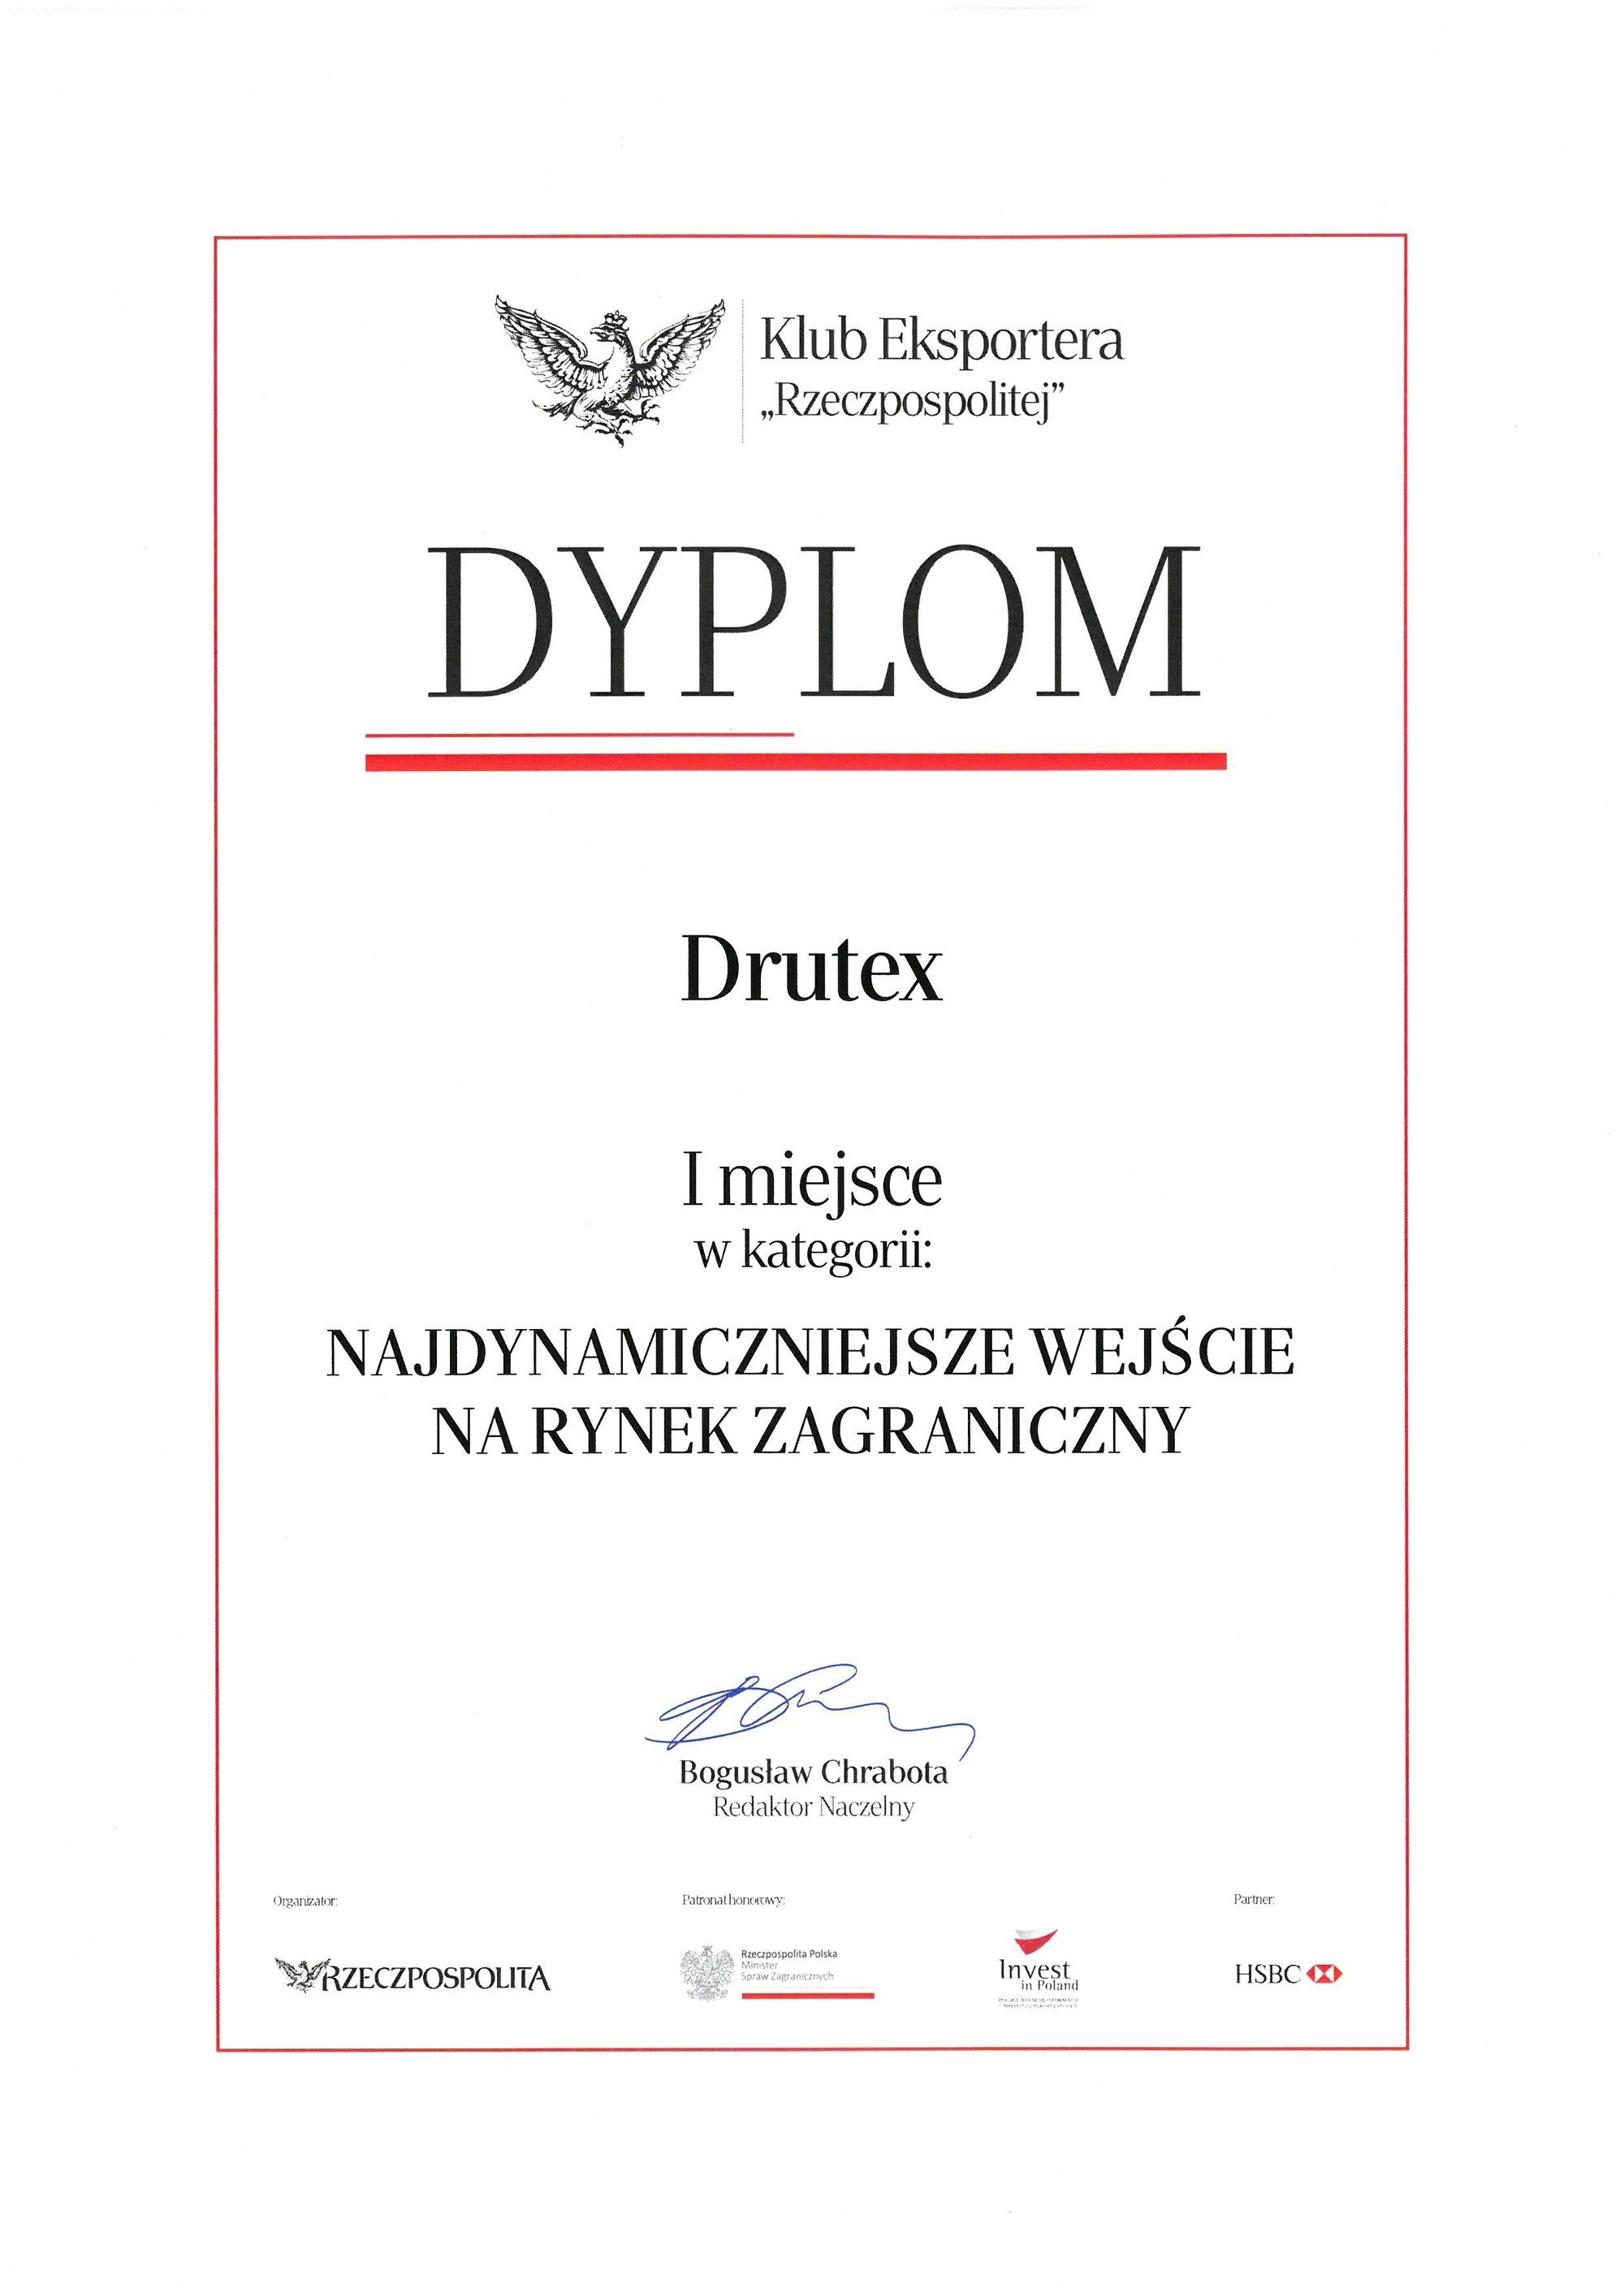 DRUTEX wins the Rzeczpospolita daily competition!